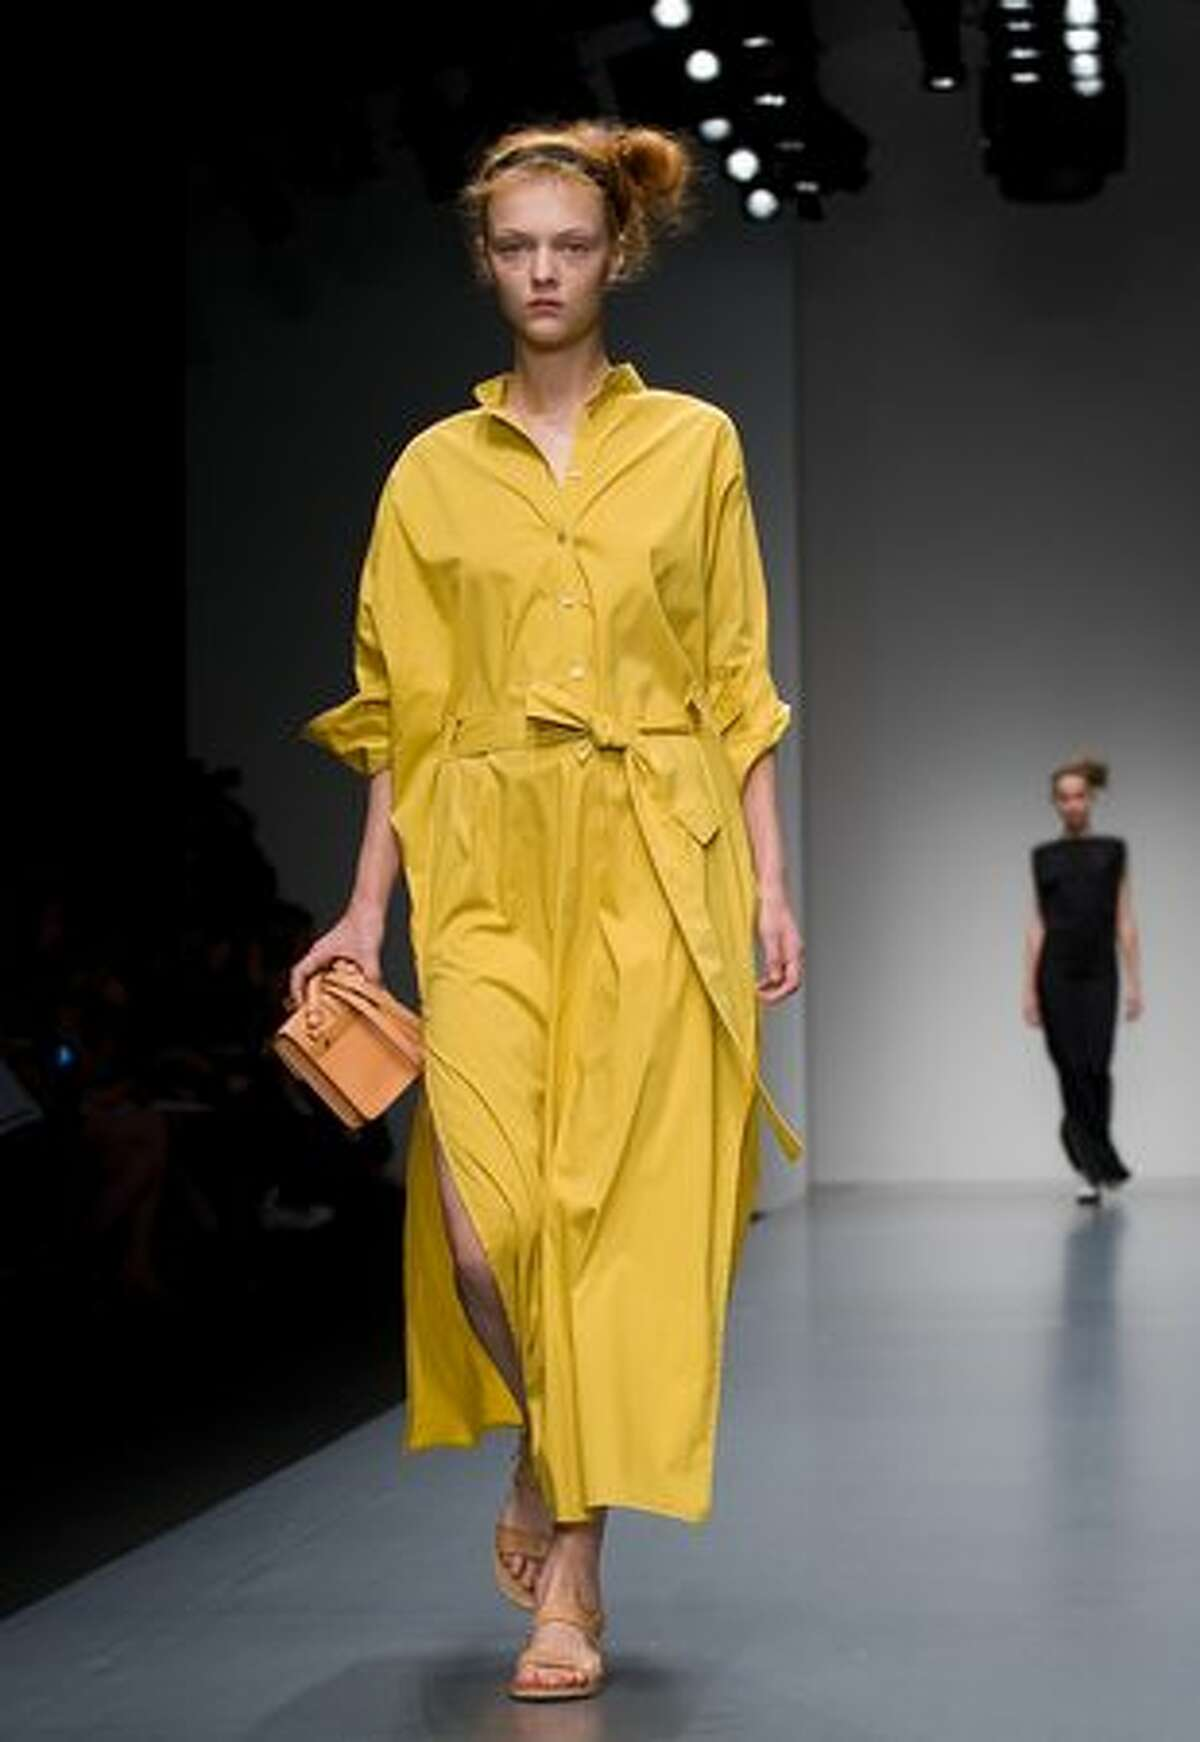 A model walks the catwalk at the Daks fashion show as part of London Fashion Week on Saturday, Sept. 18, 2010.